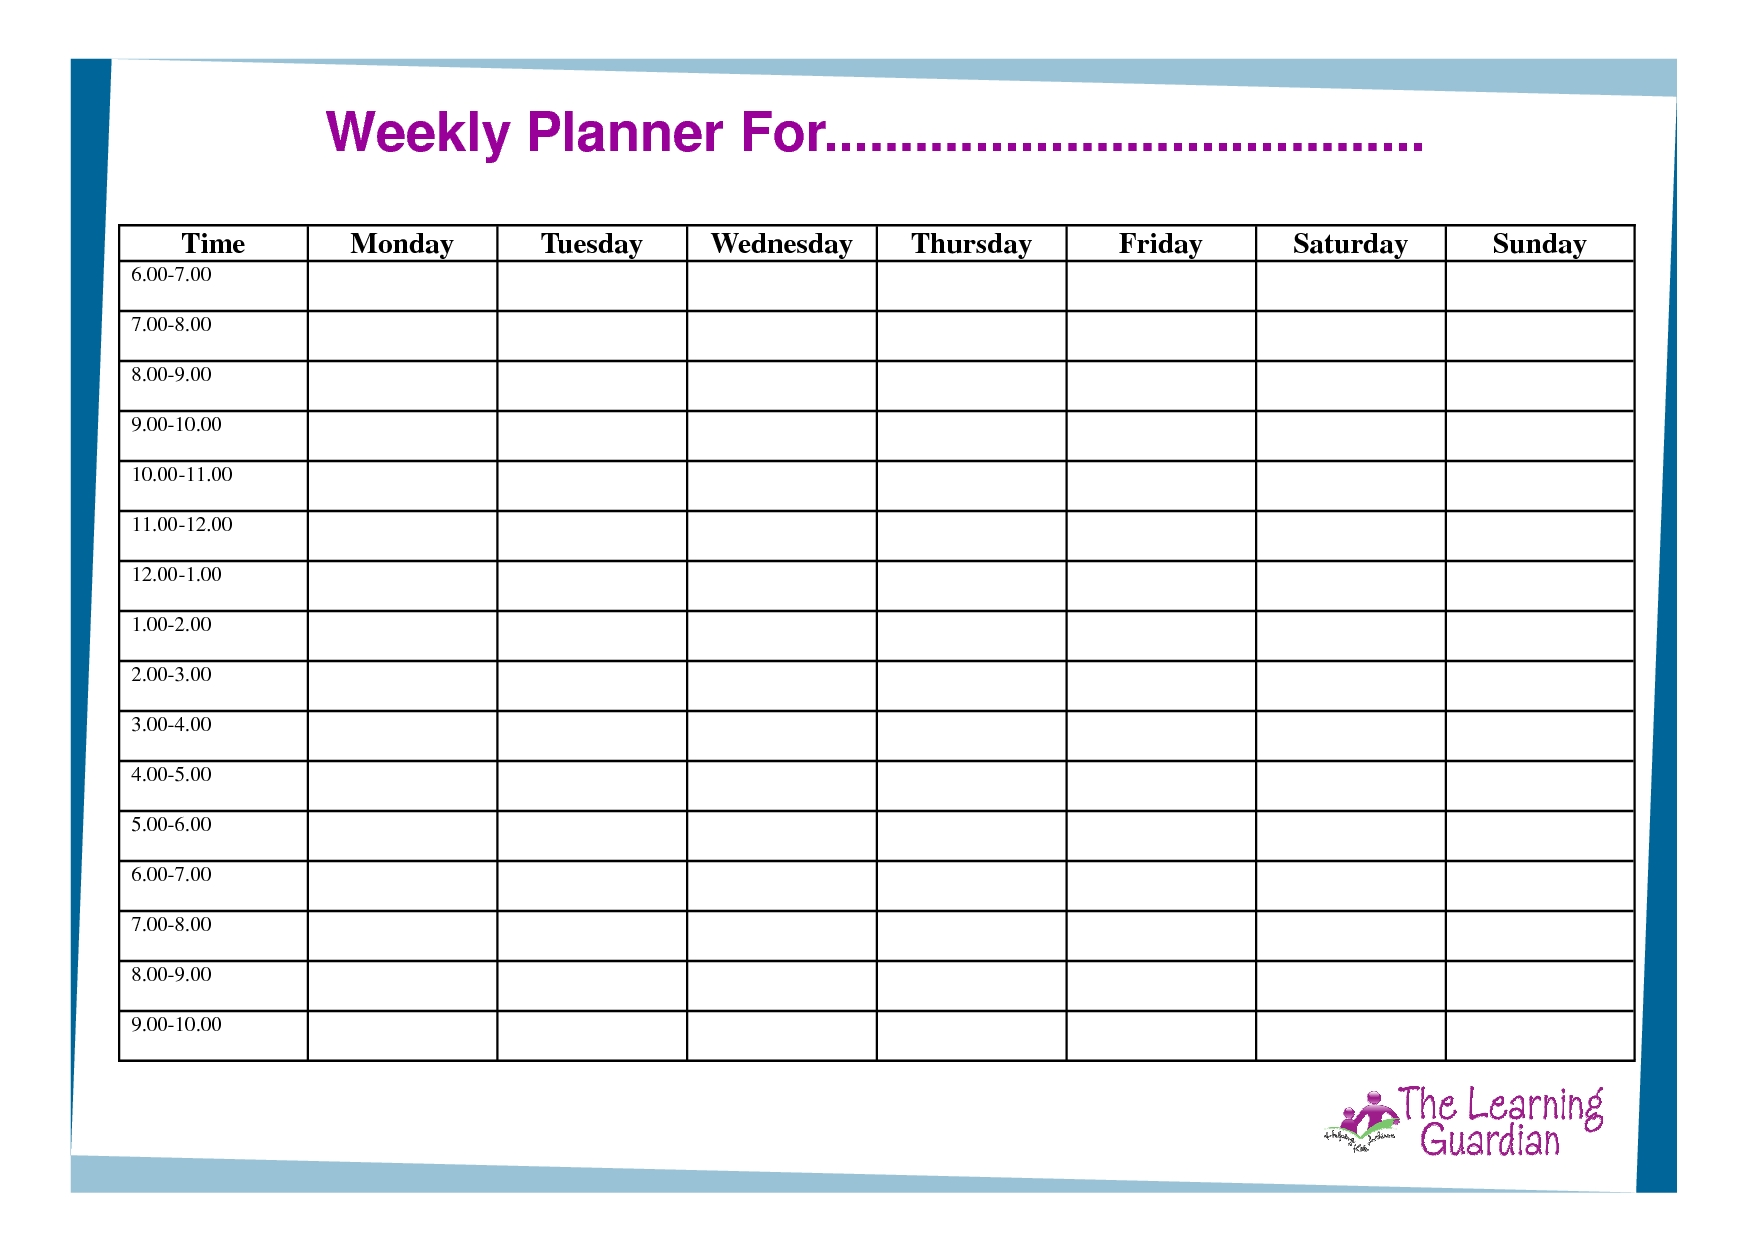 Free Printable Weekly Calendar Templates | Weekly Planner-Monday To Friday Template